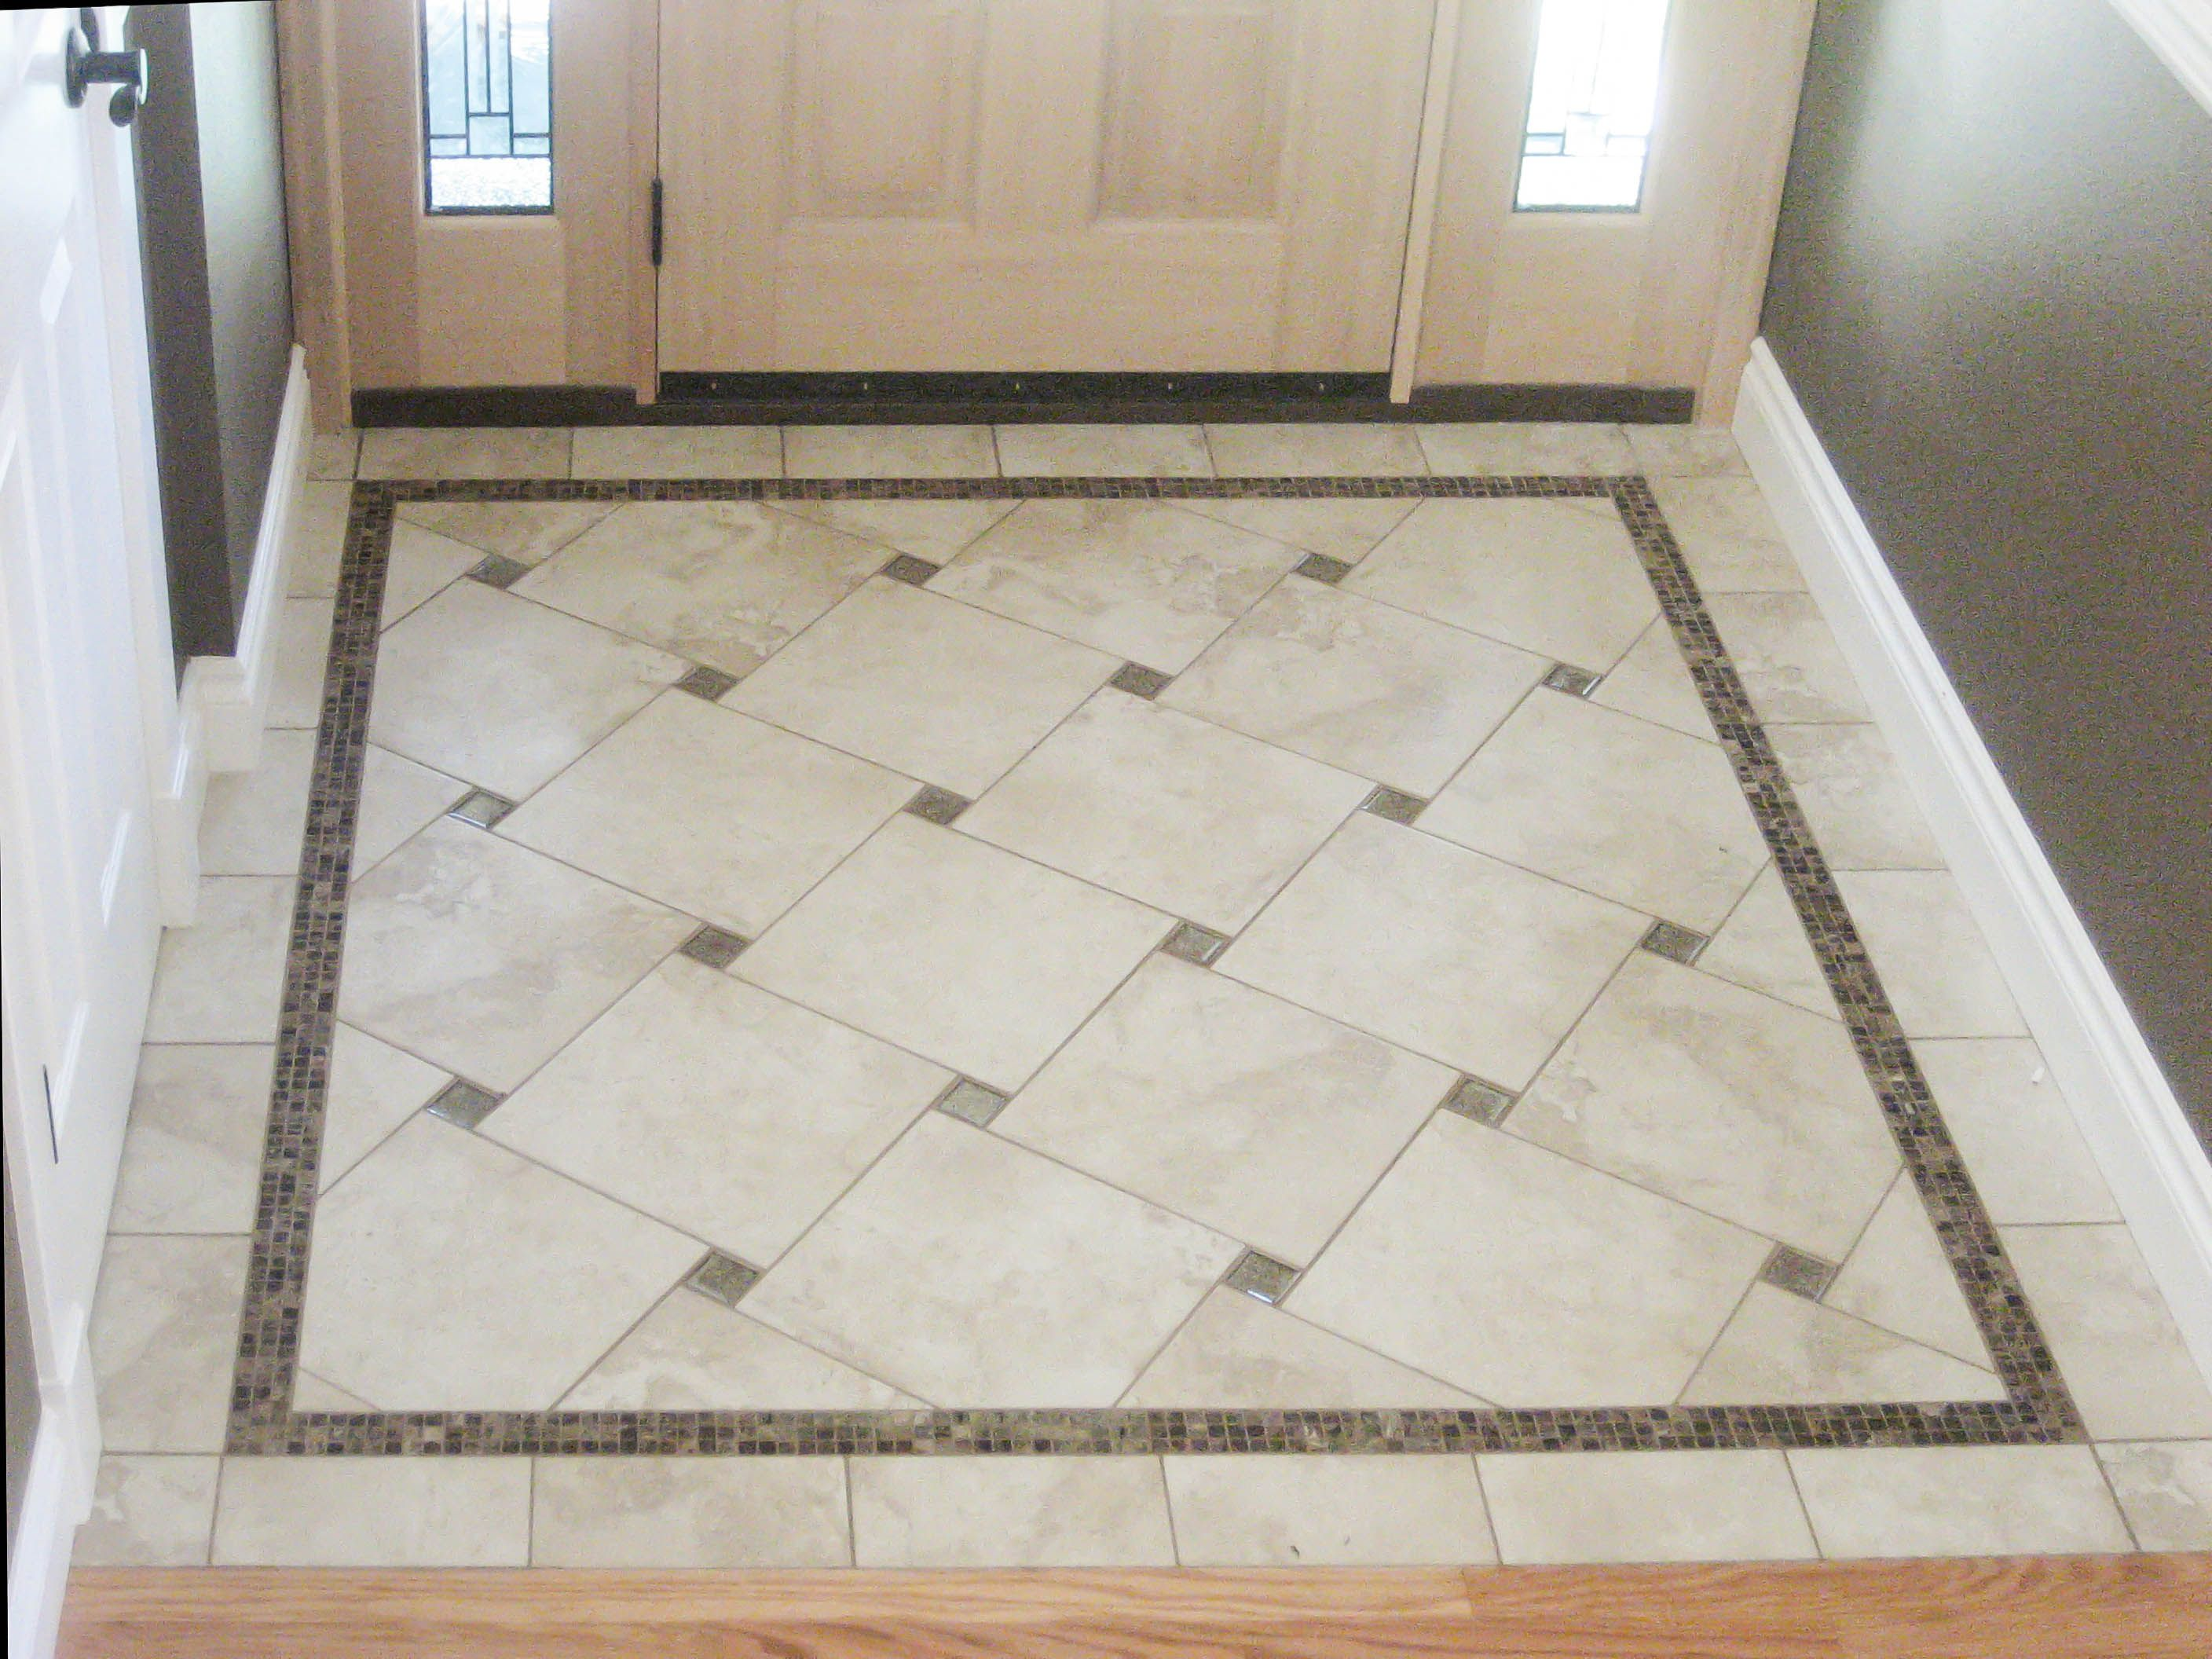 entry floor tile ideas entry floor photos gallery seattle tile contractor irc tile - Tile Floor Design Ideas